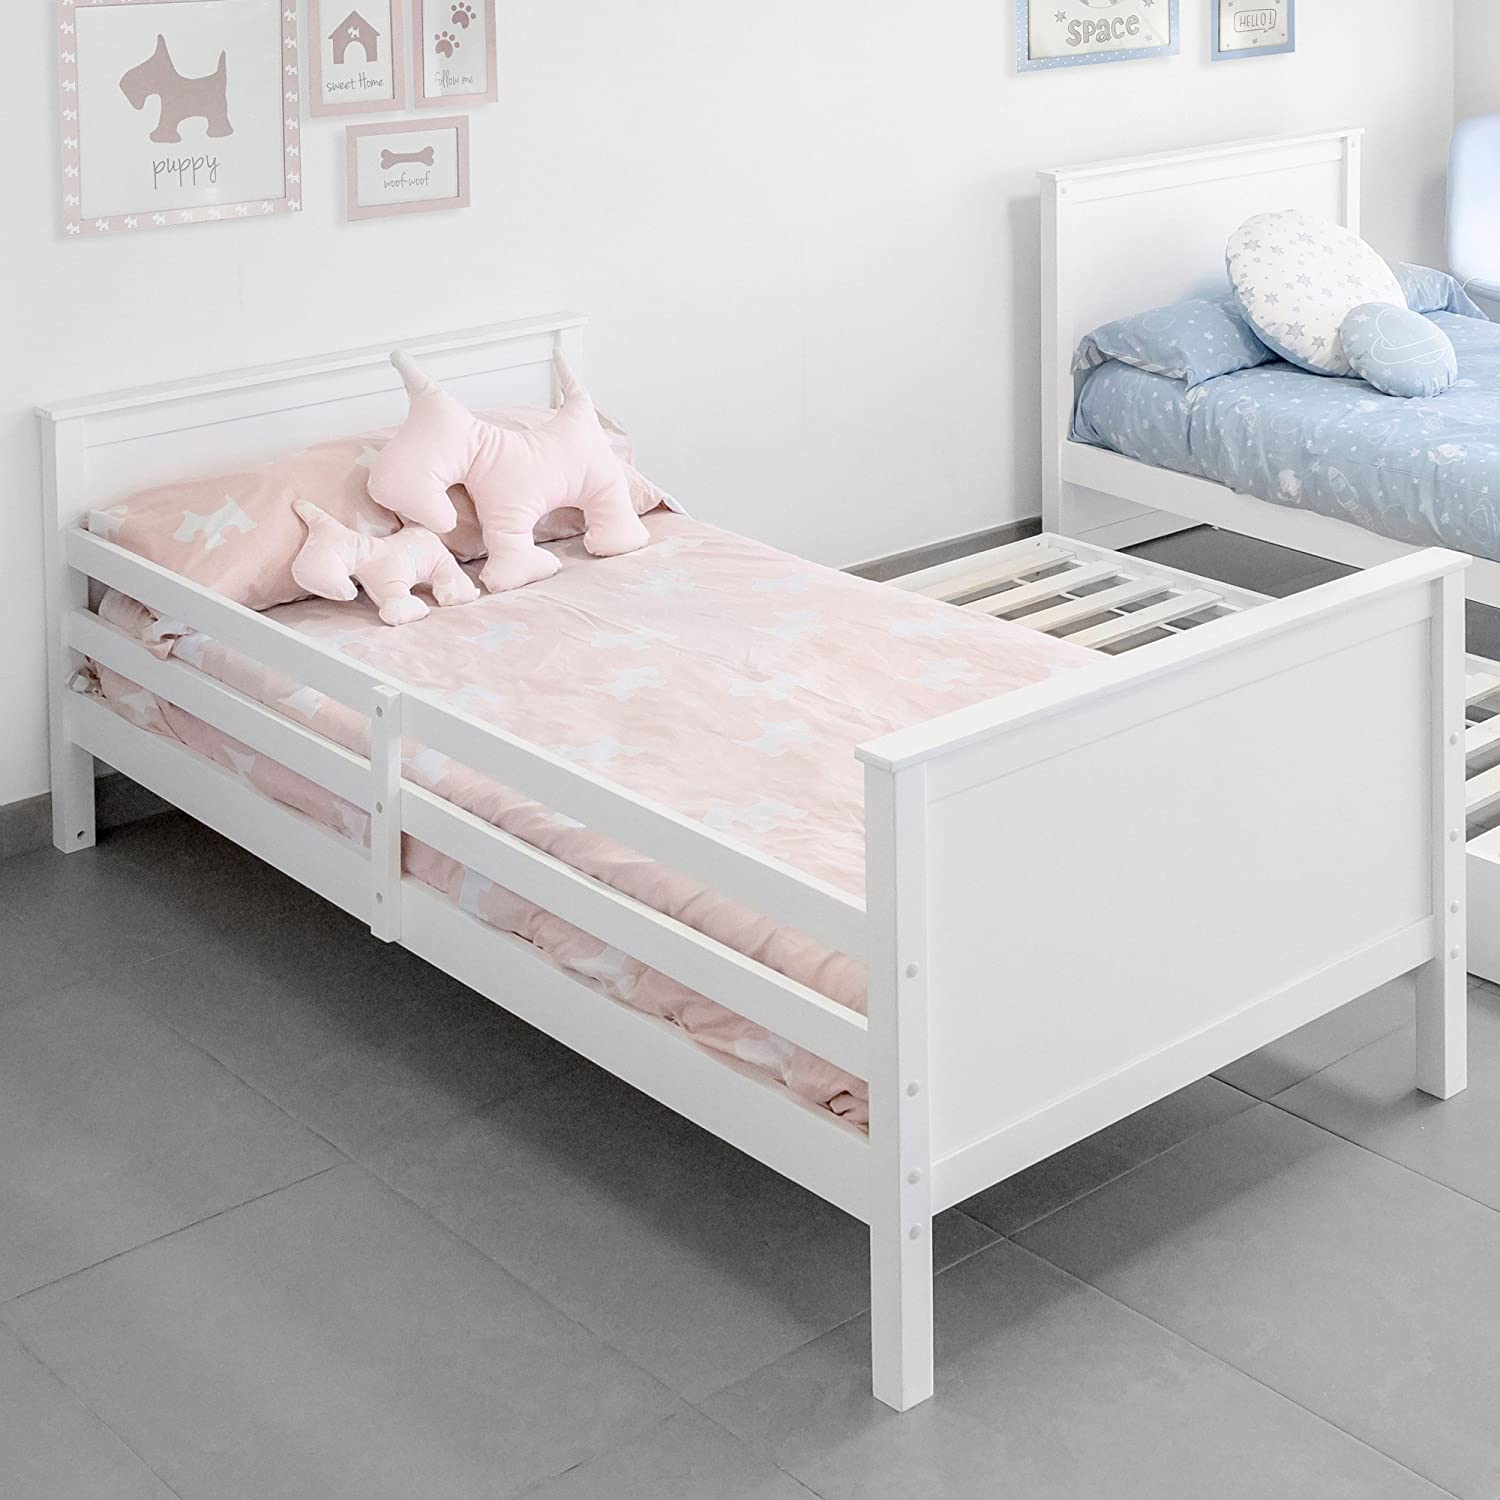 DISTRIMOBEL Litera Doble con Cama de Arrastre Baja, Color Blanco: Amazon.es: Juguetes y juegos